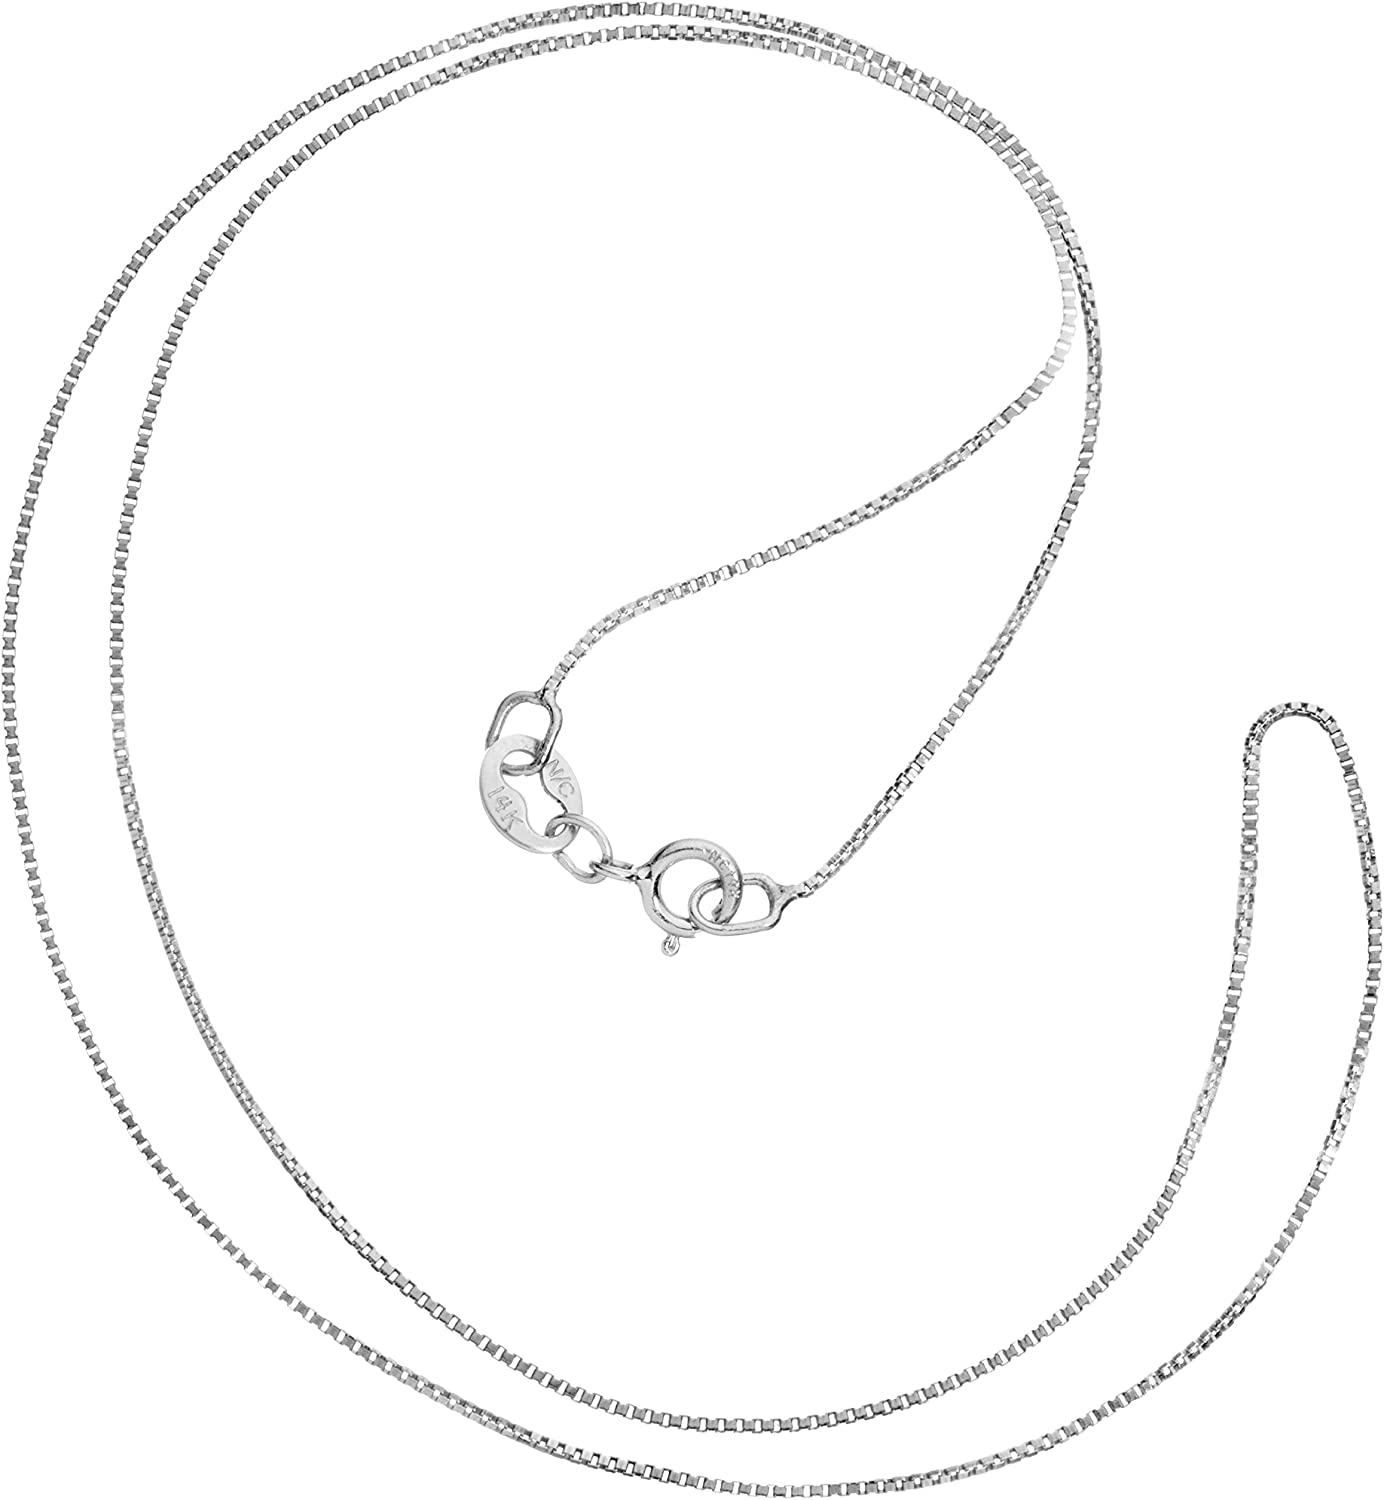 14K Solid White Gold Box Link Chain Necklace | 14 Inch to 22 Inch Lengths Available | .60mm or 1.0mm Thick